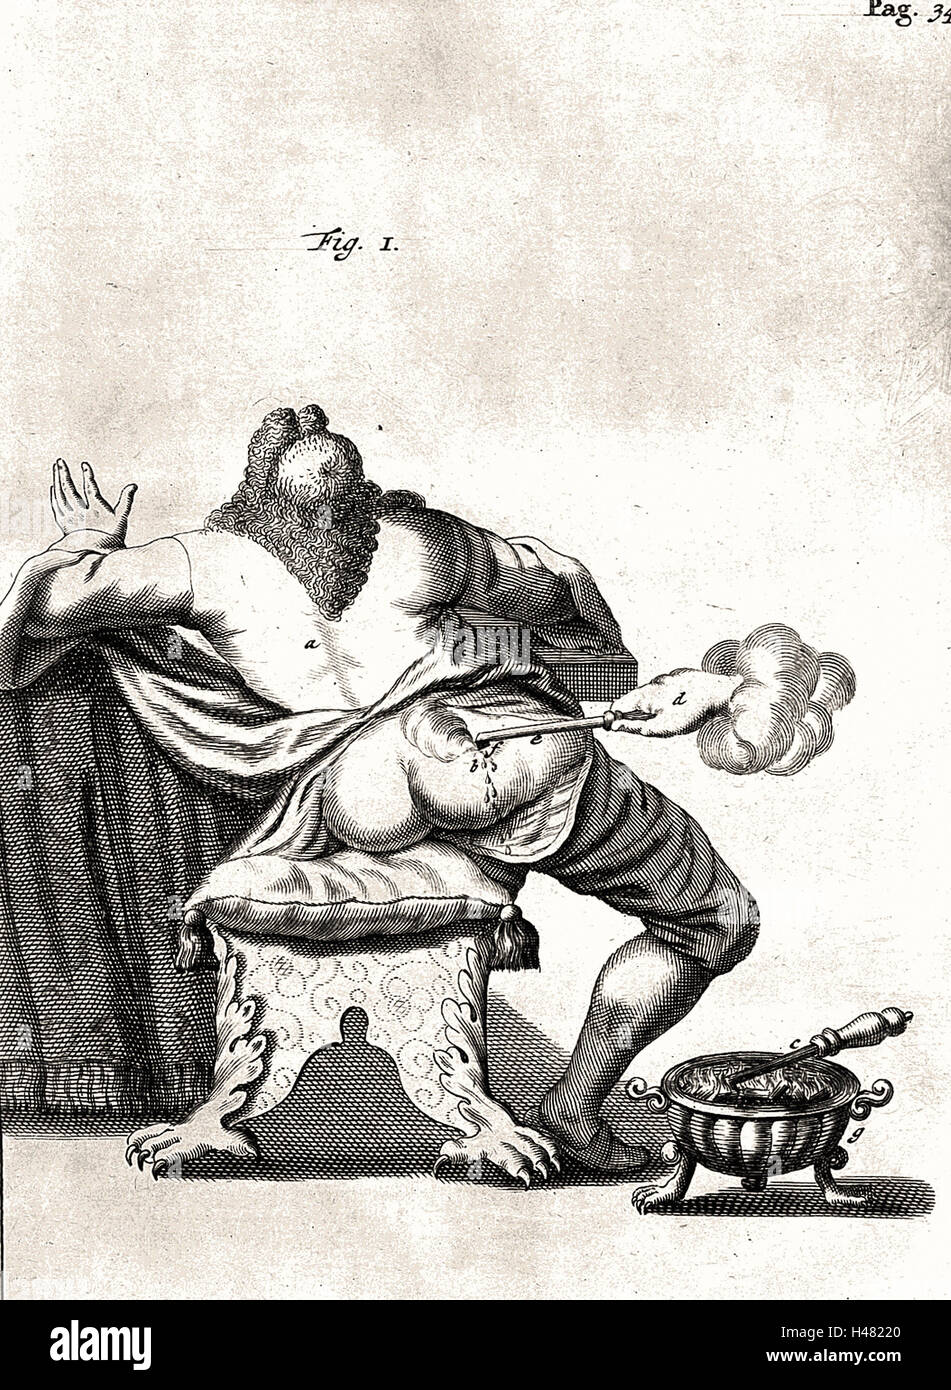 Illustration of wound cauterization, 17th century - Stock Image